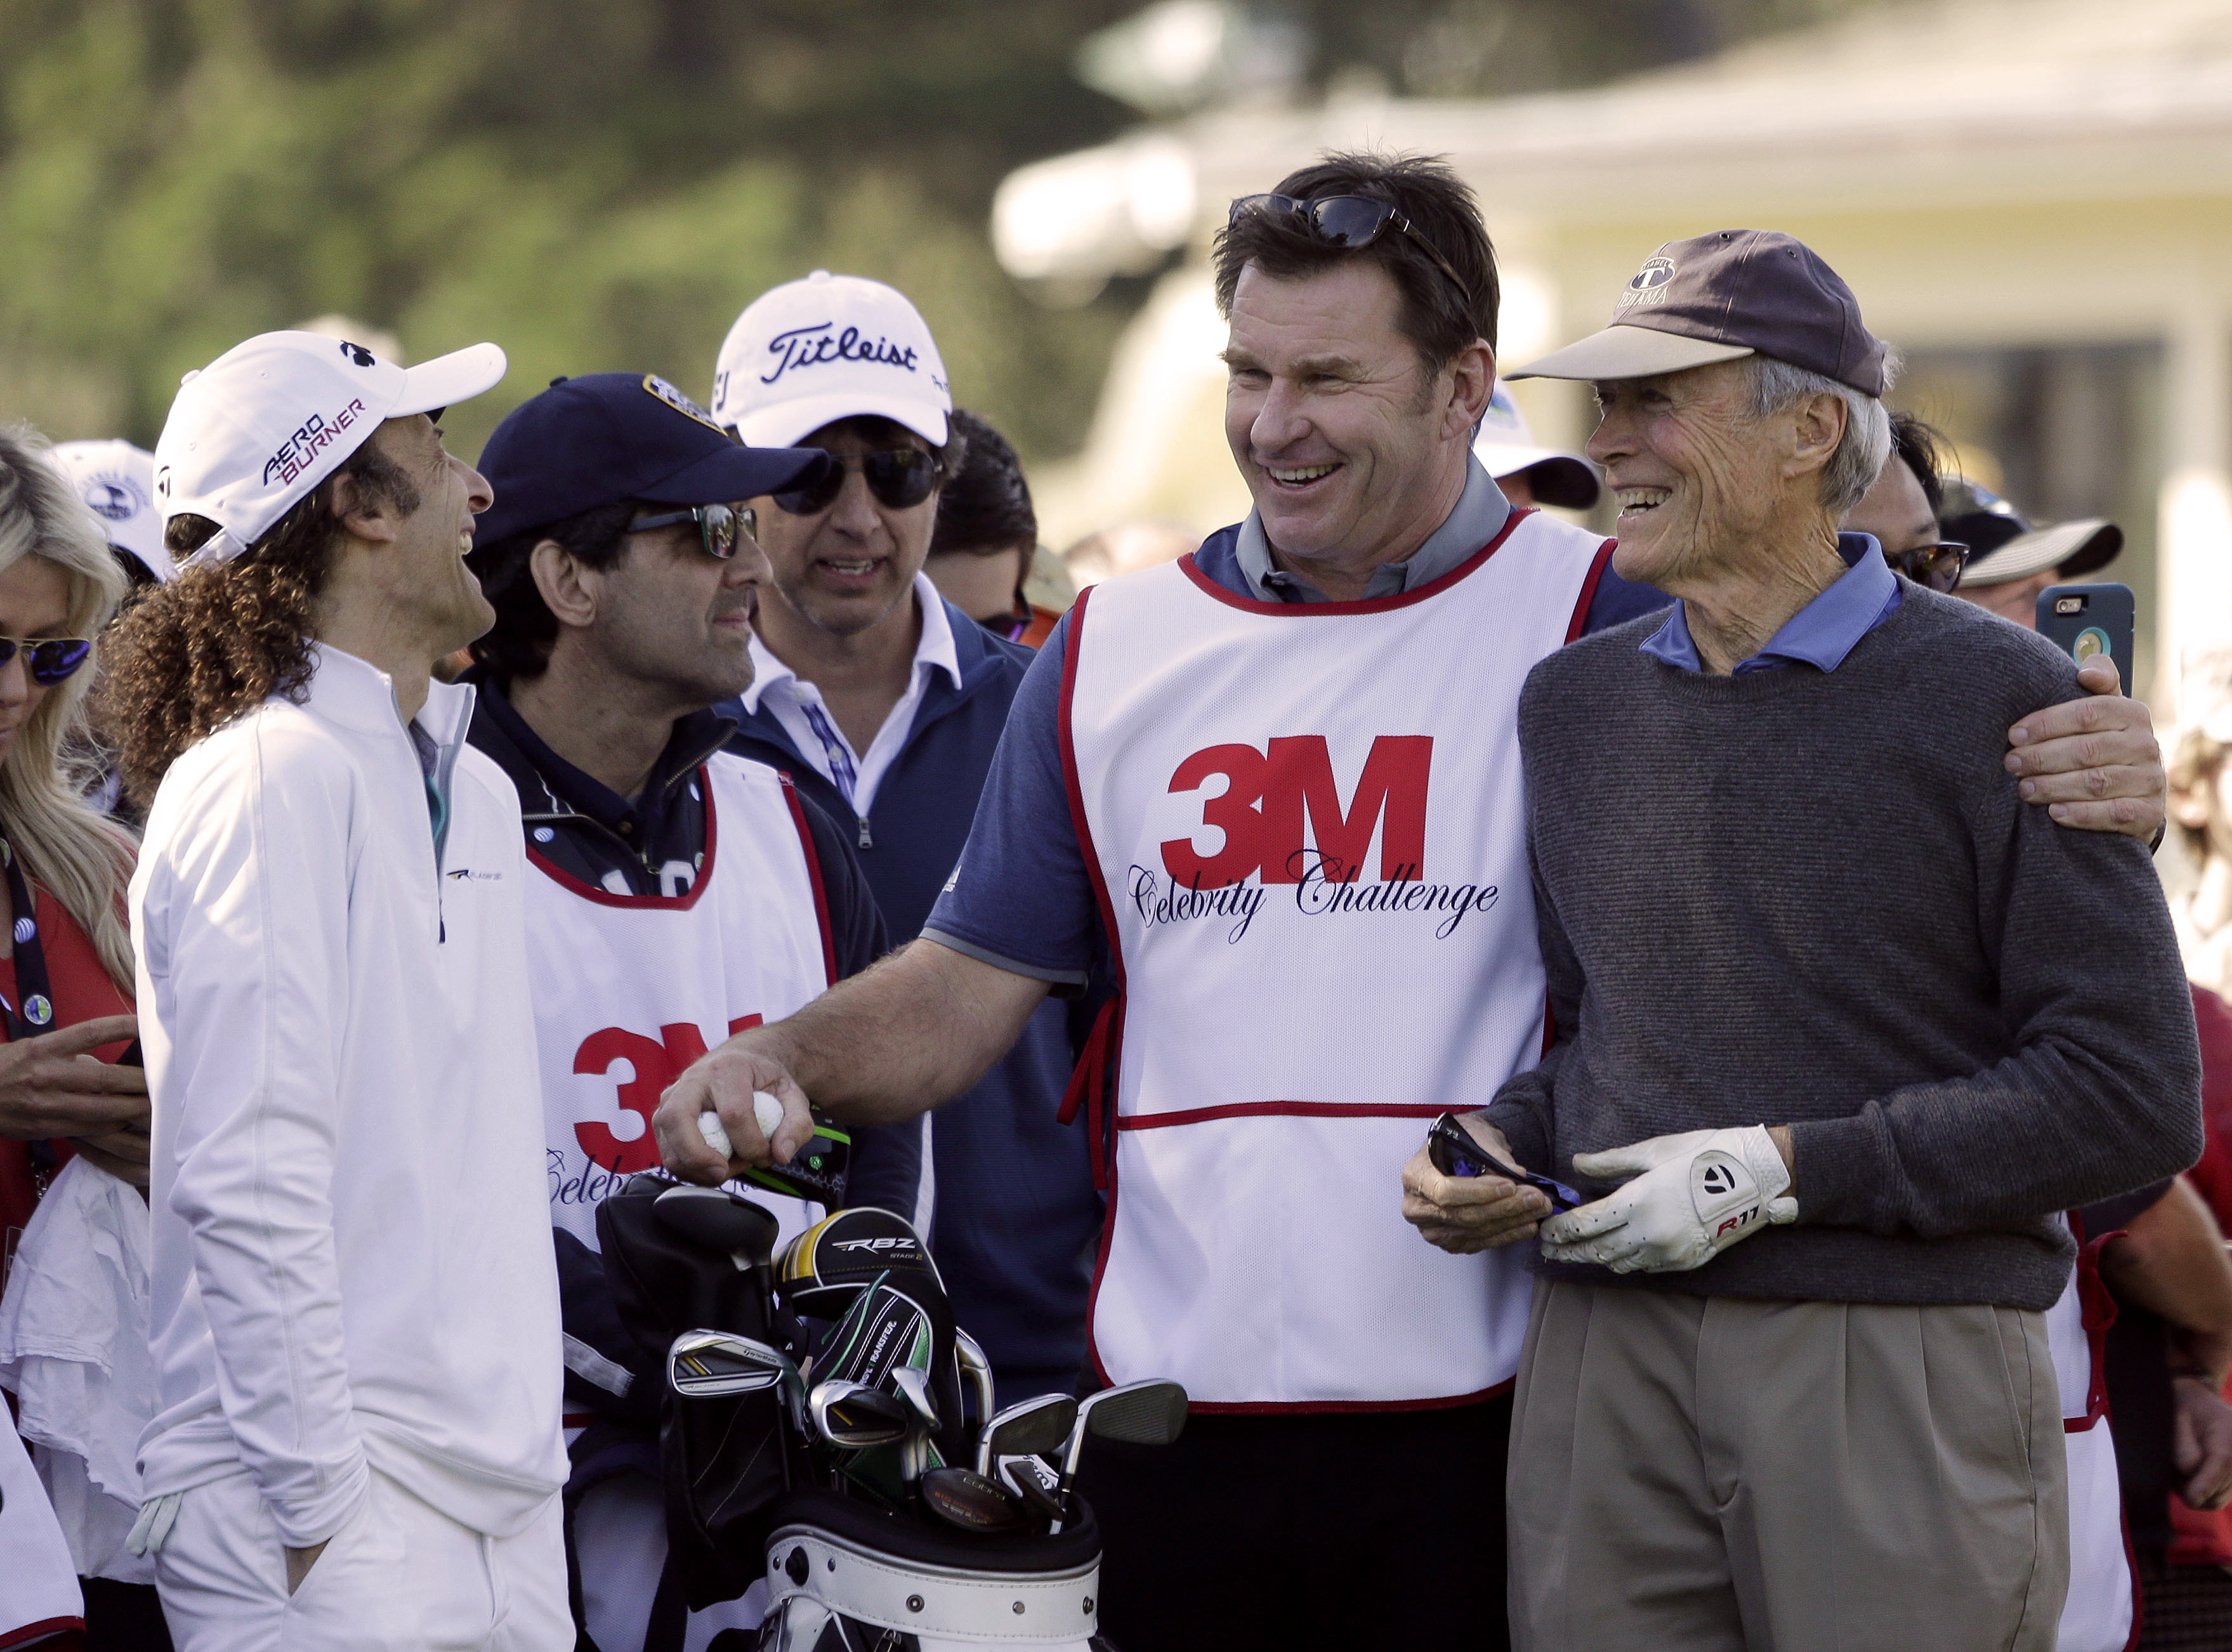 Musician Kenny G, left, laughs as actor Clint Eastwood, right, is embraced by his caddie Nick Faldo, second from right, on the first tee of the Pebble Beach Golf Links during the celebrity challenge event of the AT&T Pebble Beach National Pro-Am golf tour